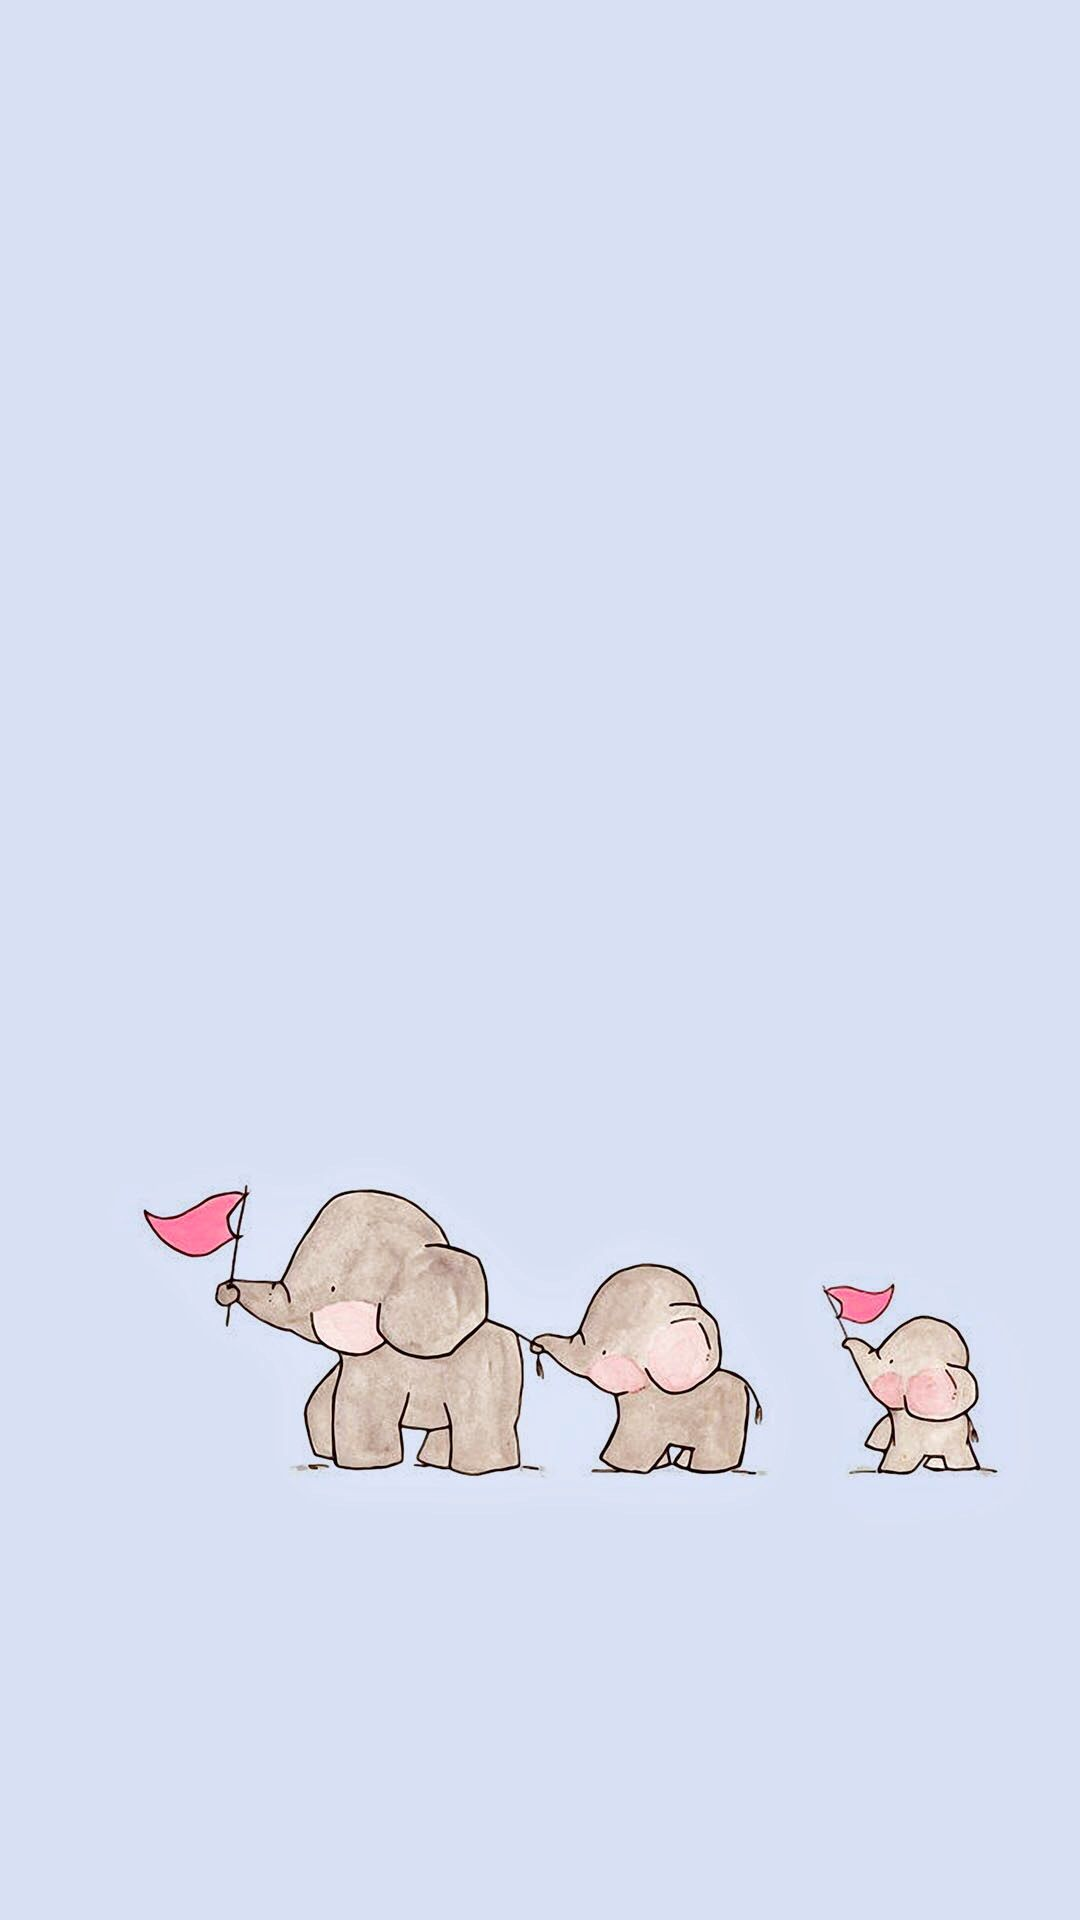 Pin By Esther Zhang On Cute Wallpapers Wallpaper Iphone Cute Hipster Wallpaper Pink Wallpaper Iphone